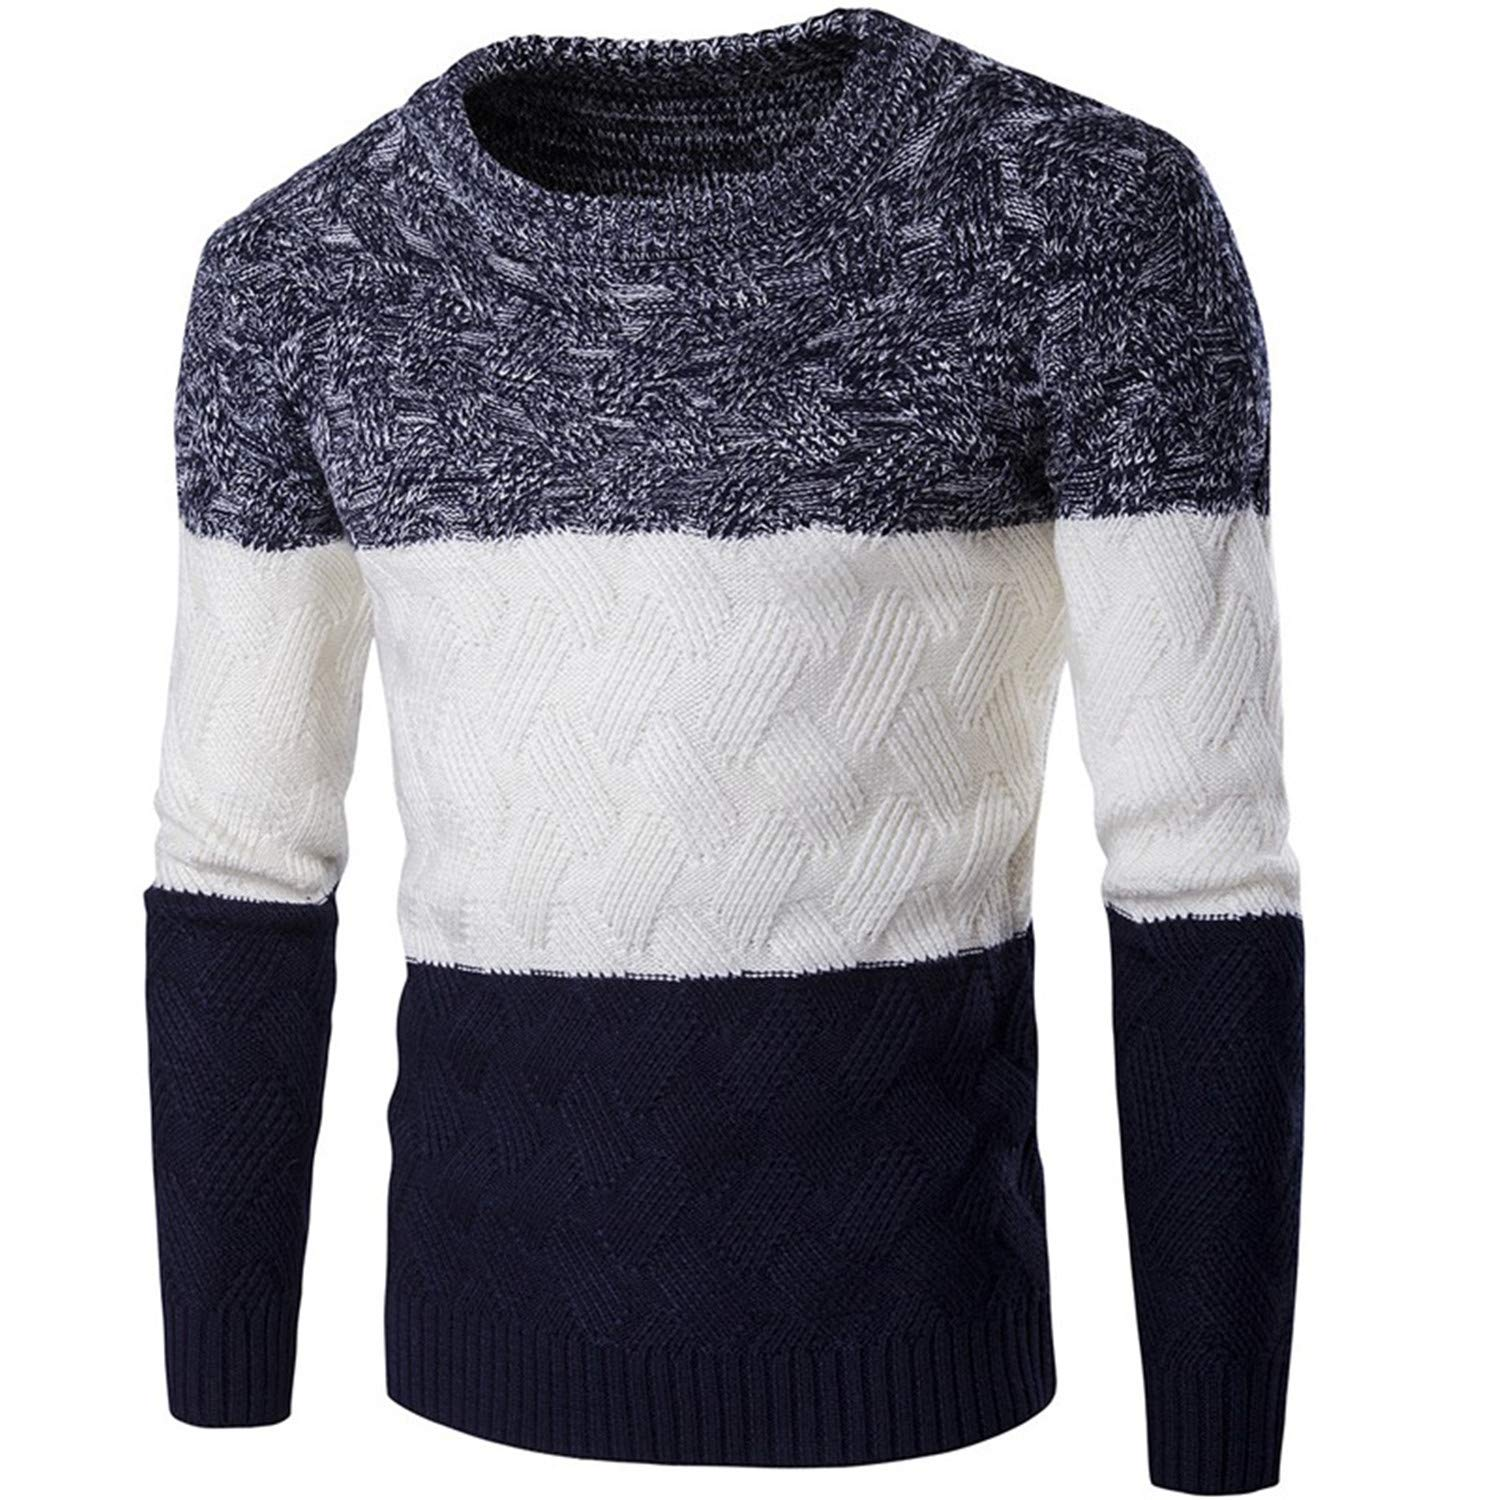 Thadensama Sweater Men Casual Pullover Men Autumn O Neck Gradient Color Quality Knitted Male Sweaters S-2Xl